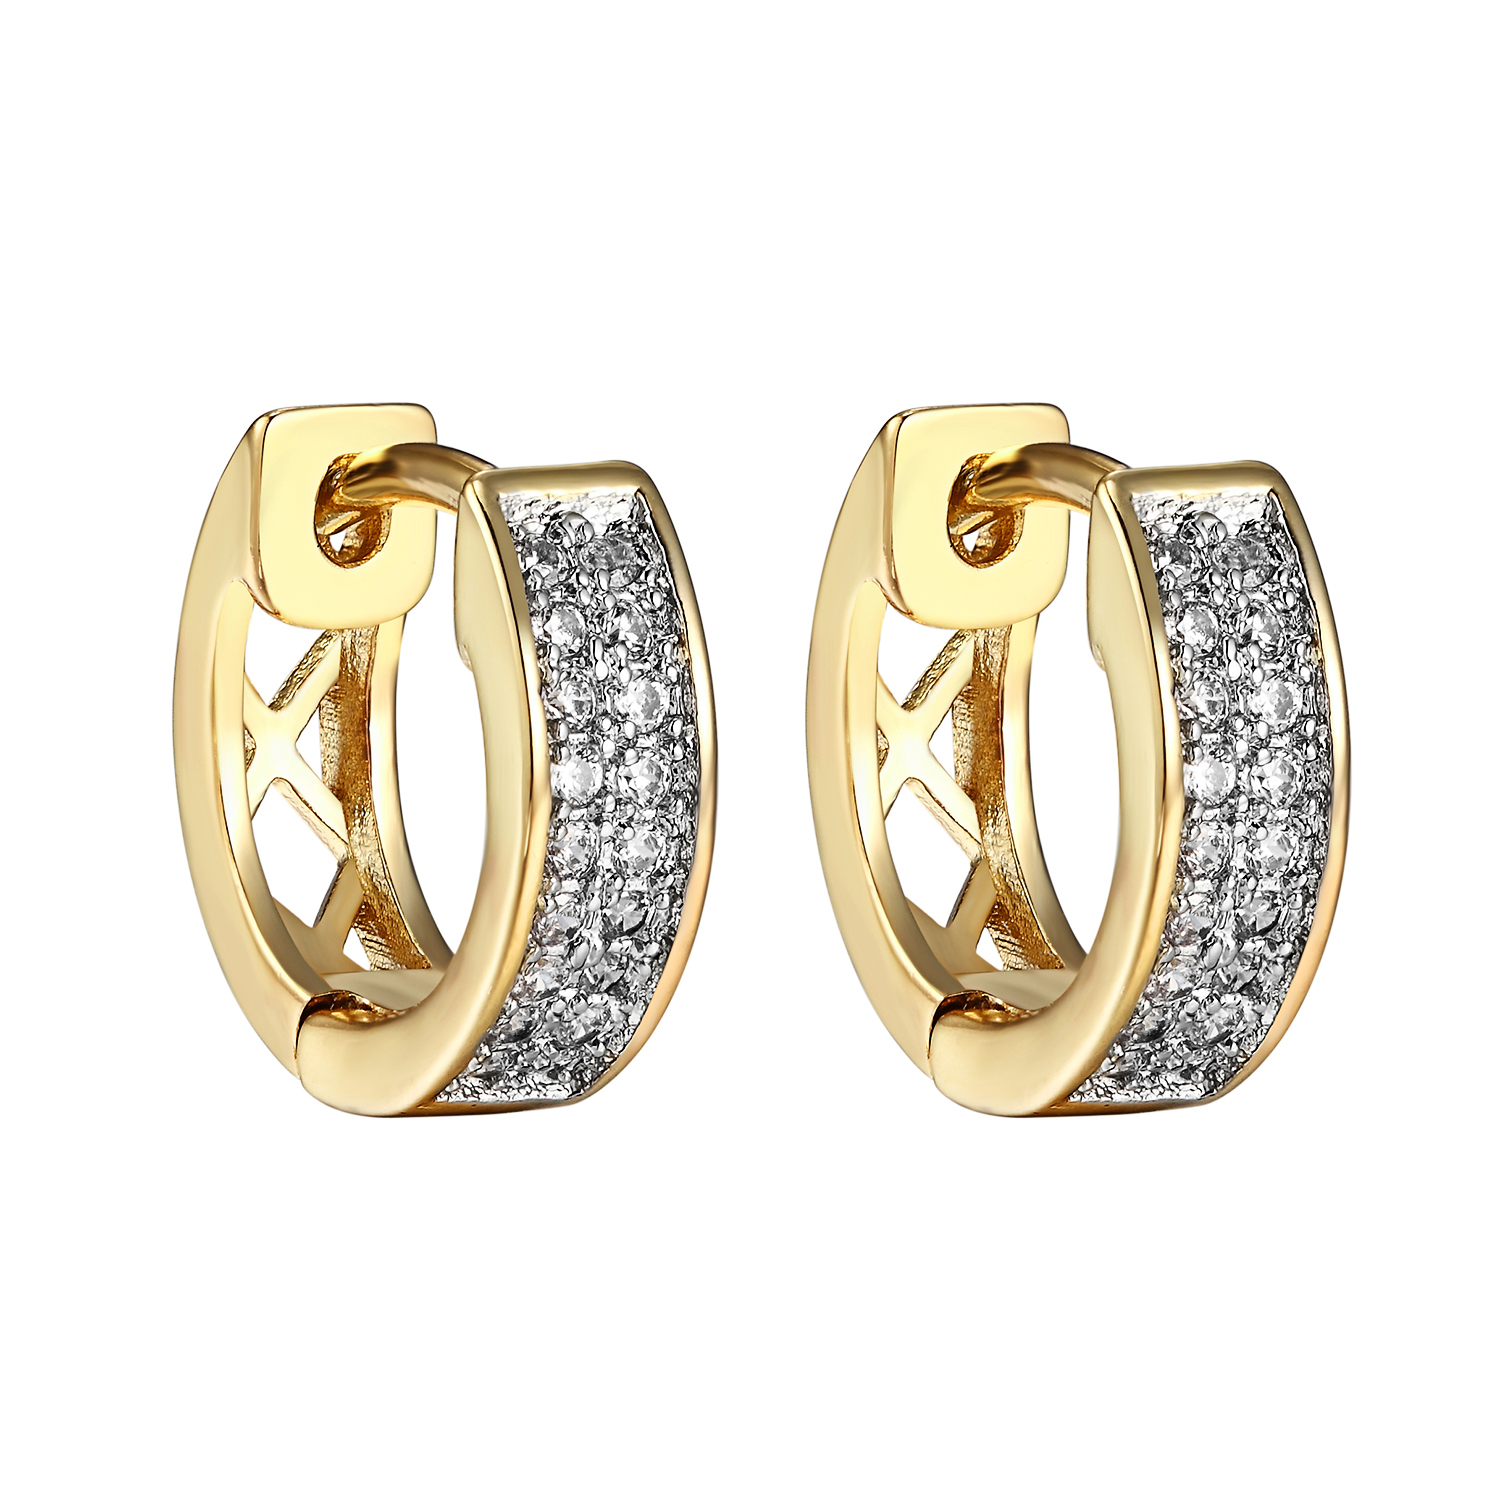 Cluster Set Hoop Earrings Lab Created Cubic Zirconias 14k Yellow